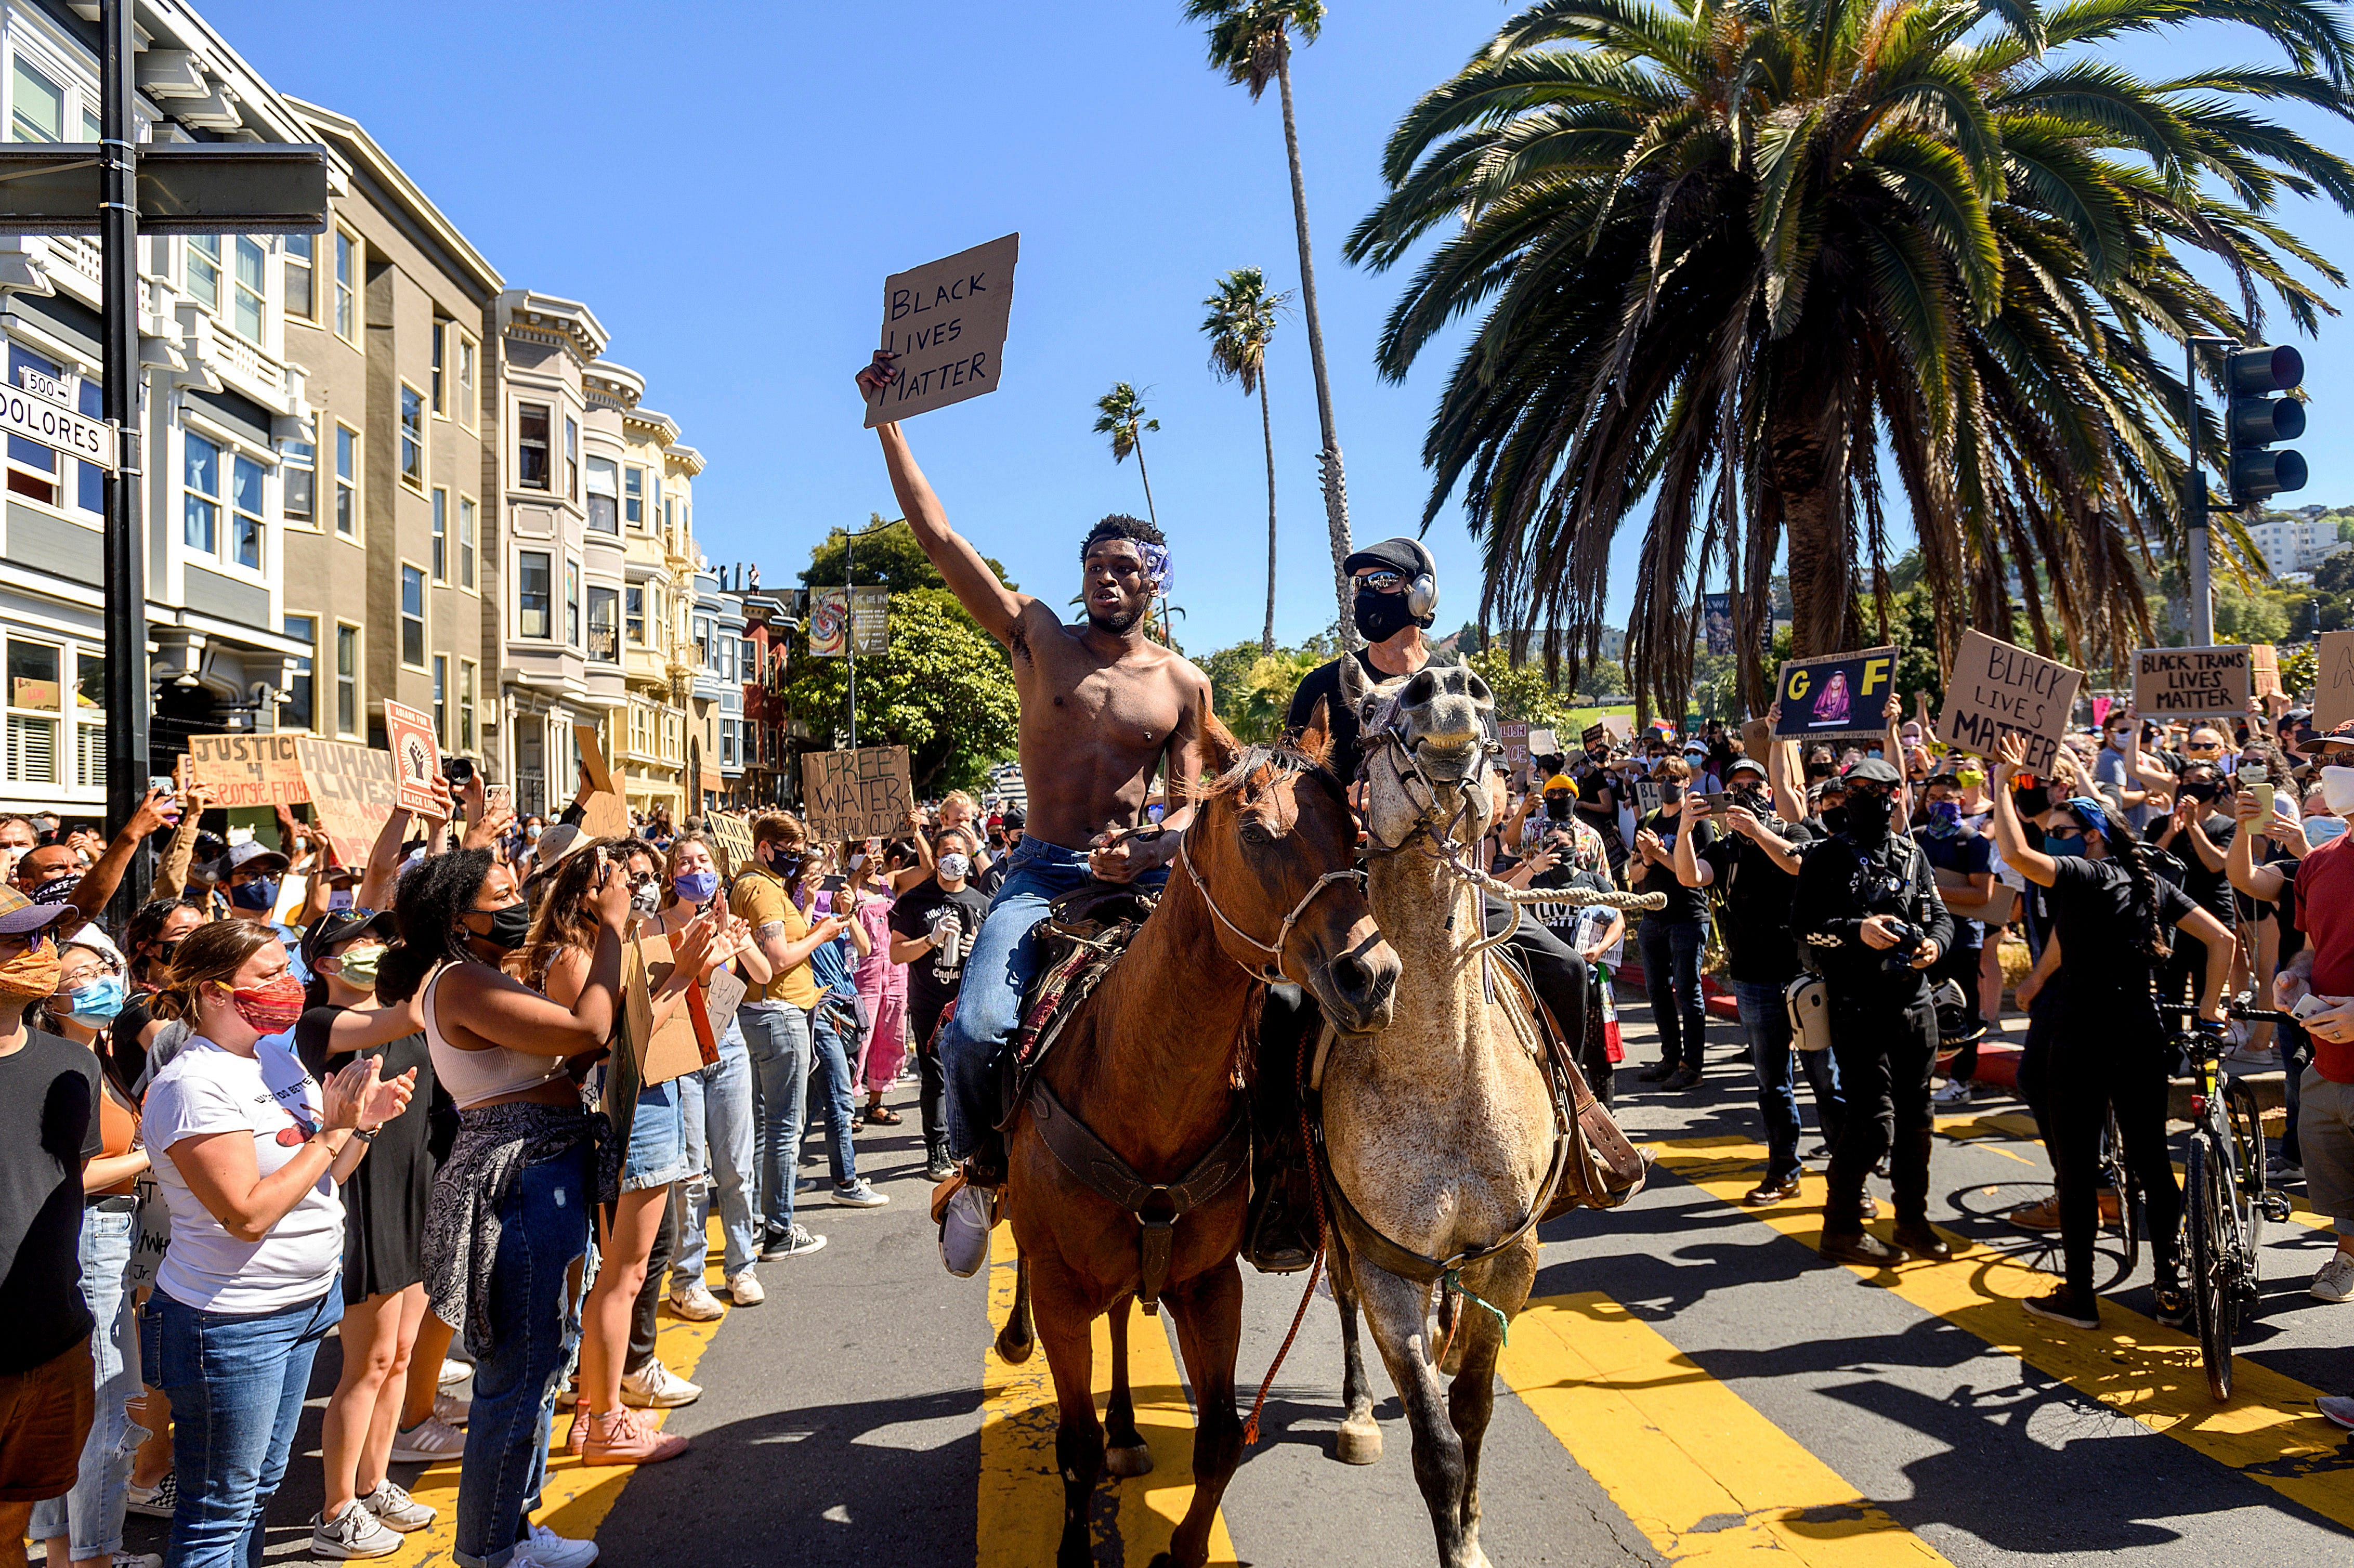 George Floyd protests: 10K march in San Francisco; Floyd s son visits site of father s death; New York City, Los Angeles continue curfew